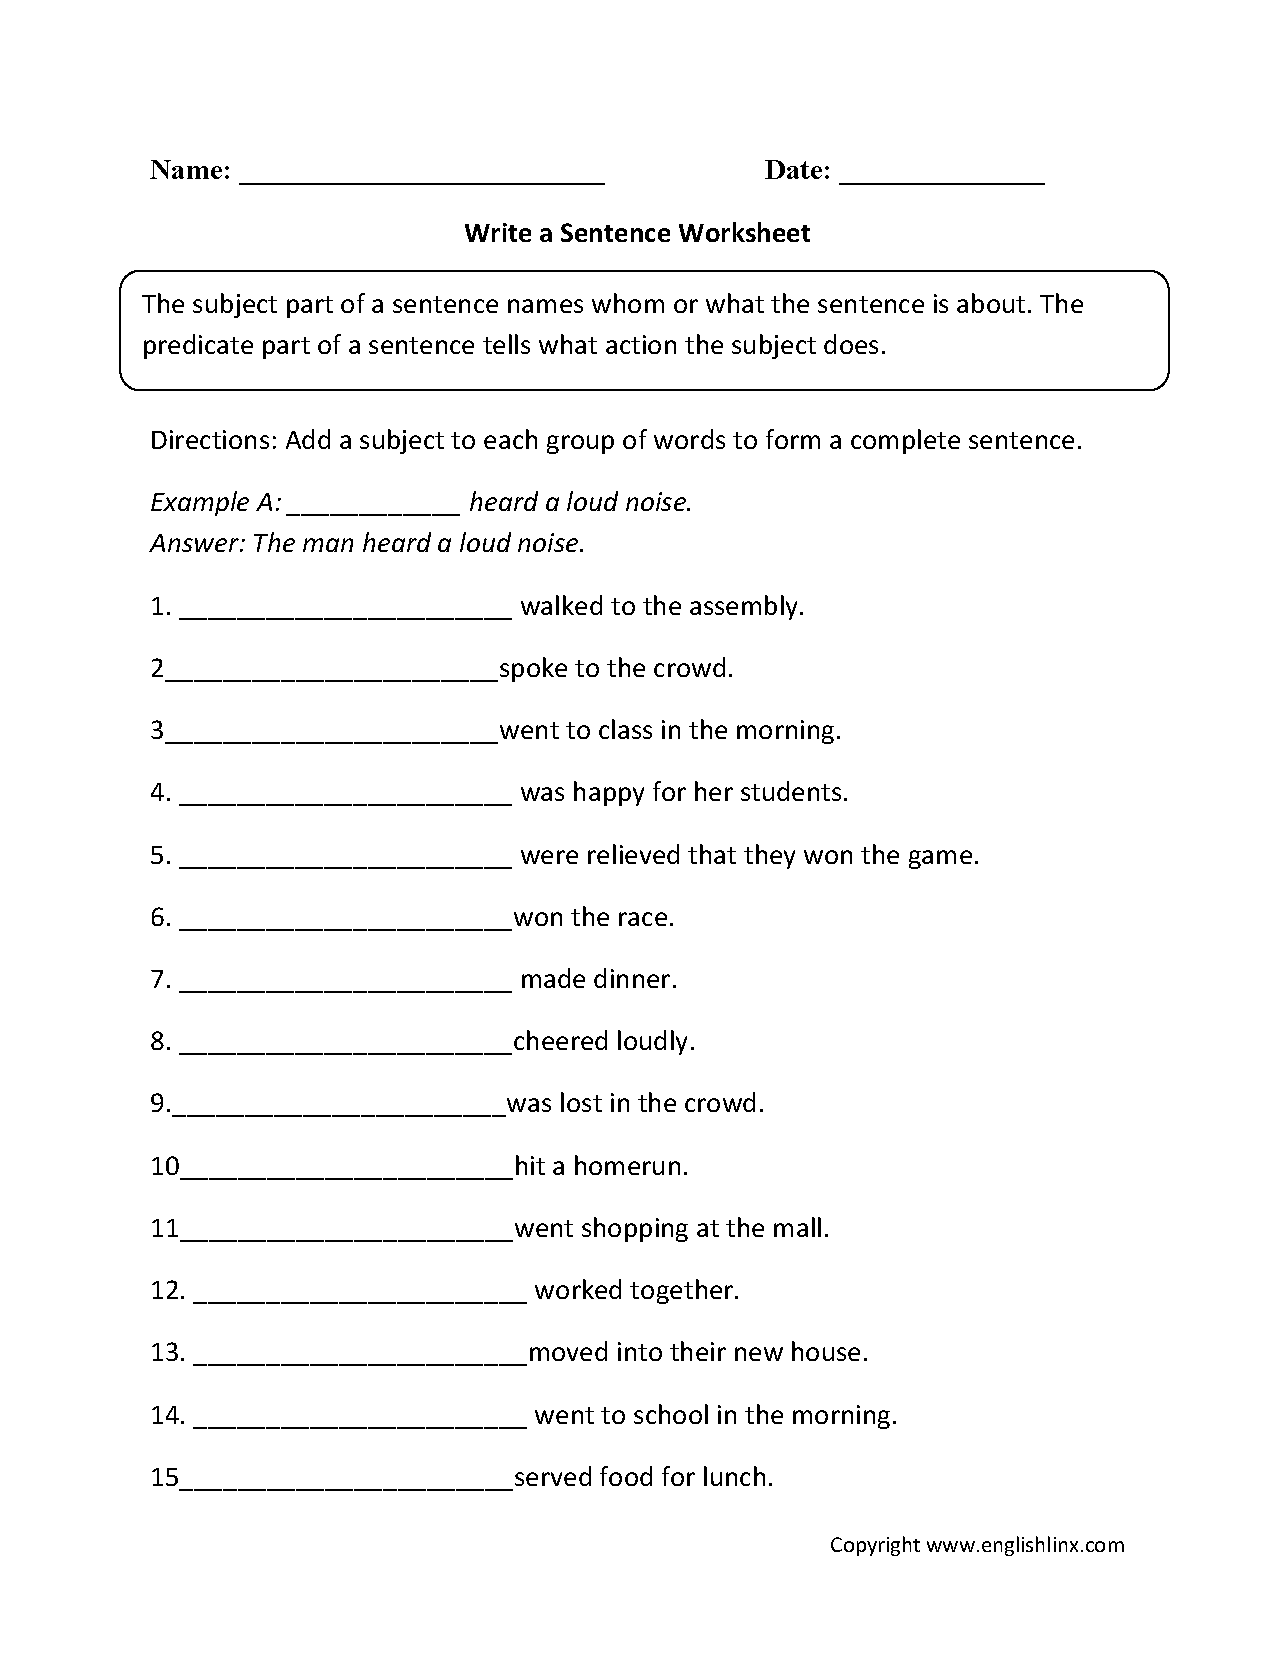 Worksheets Sentence Building Worksheets sentence structure worksheets building write a worksheet